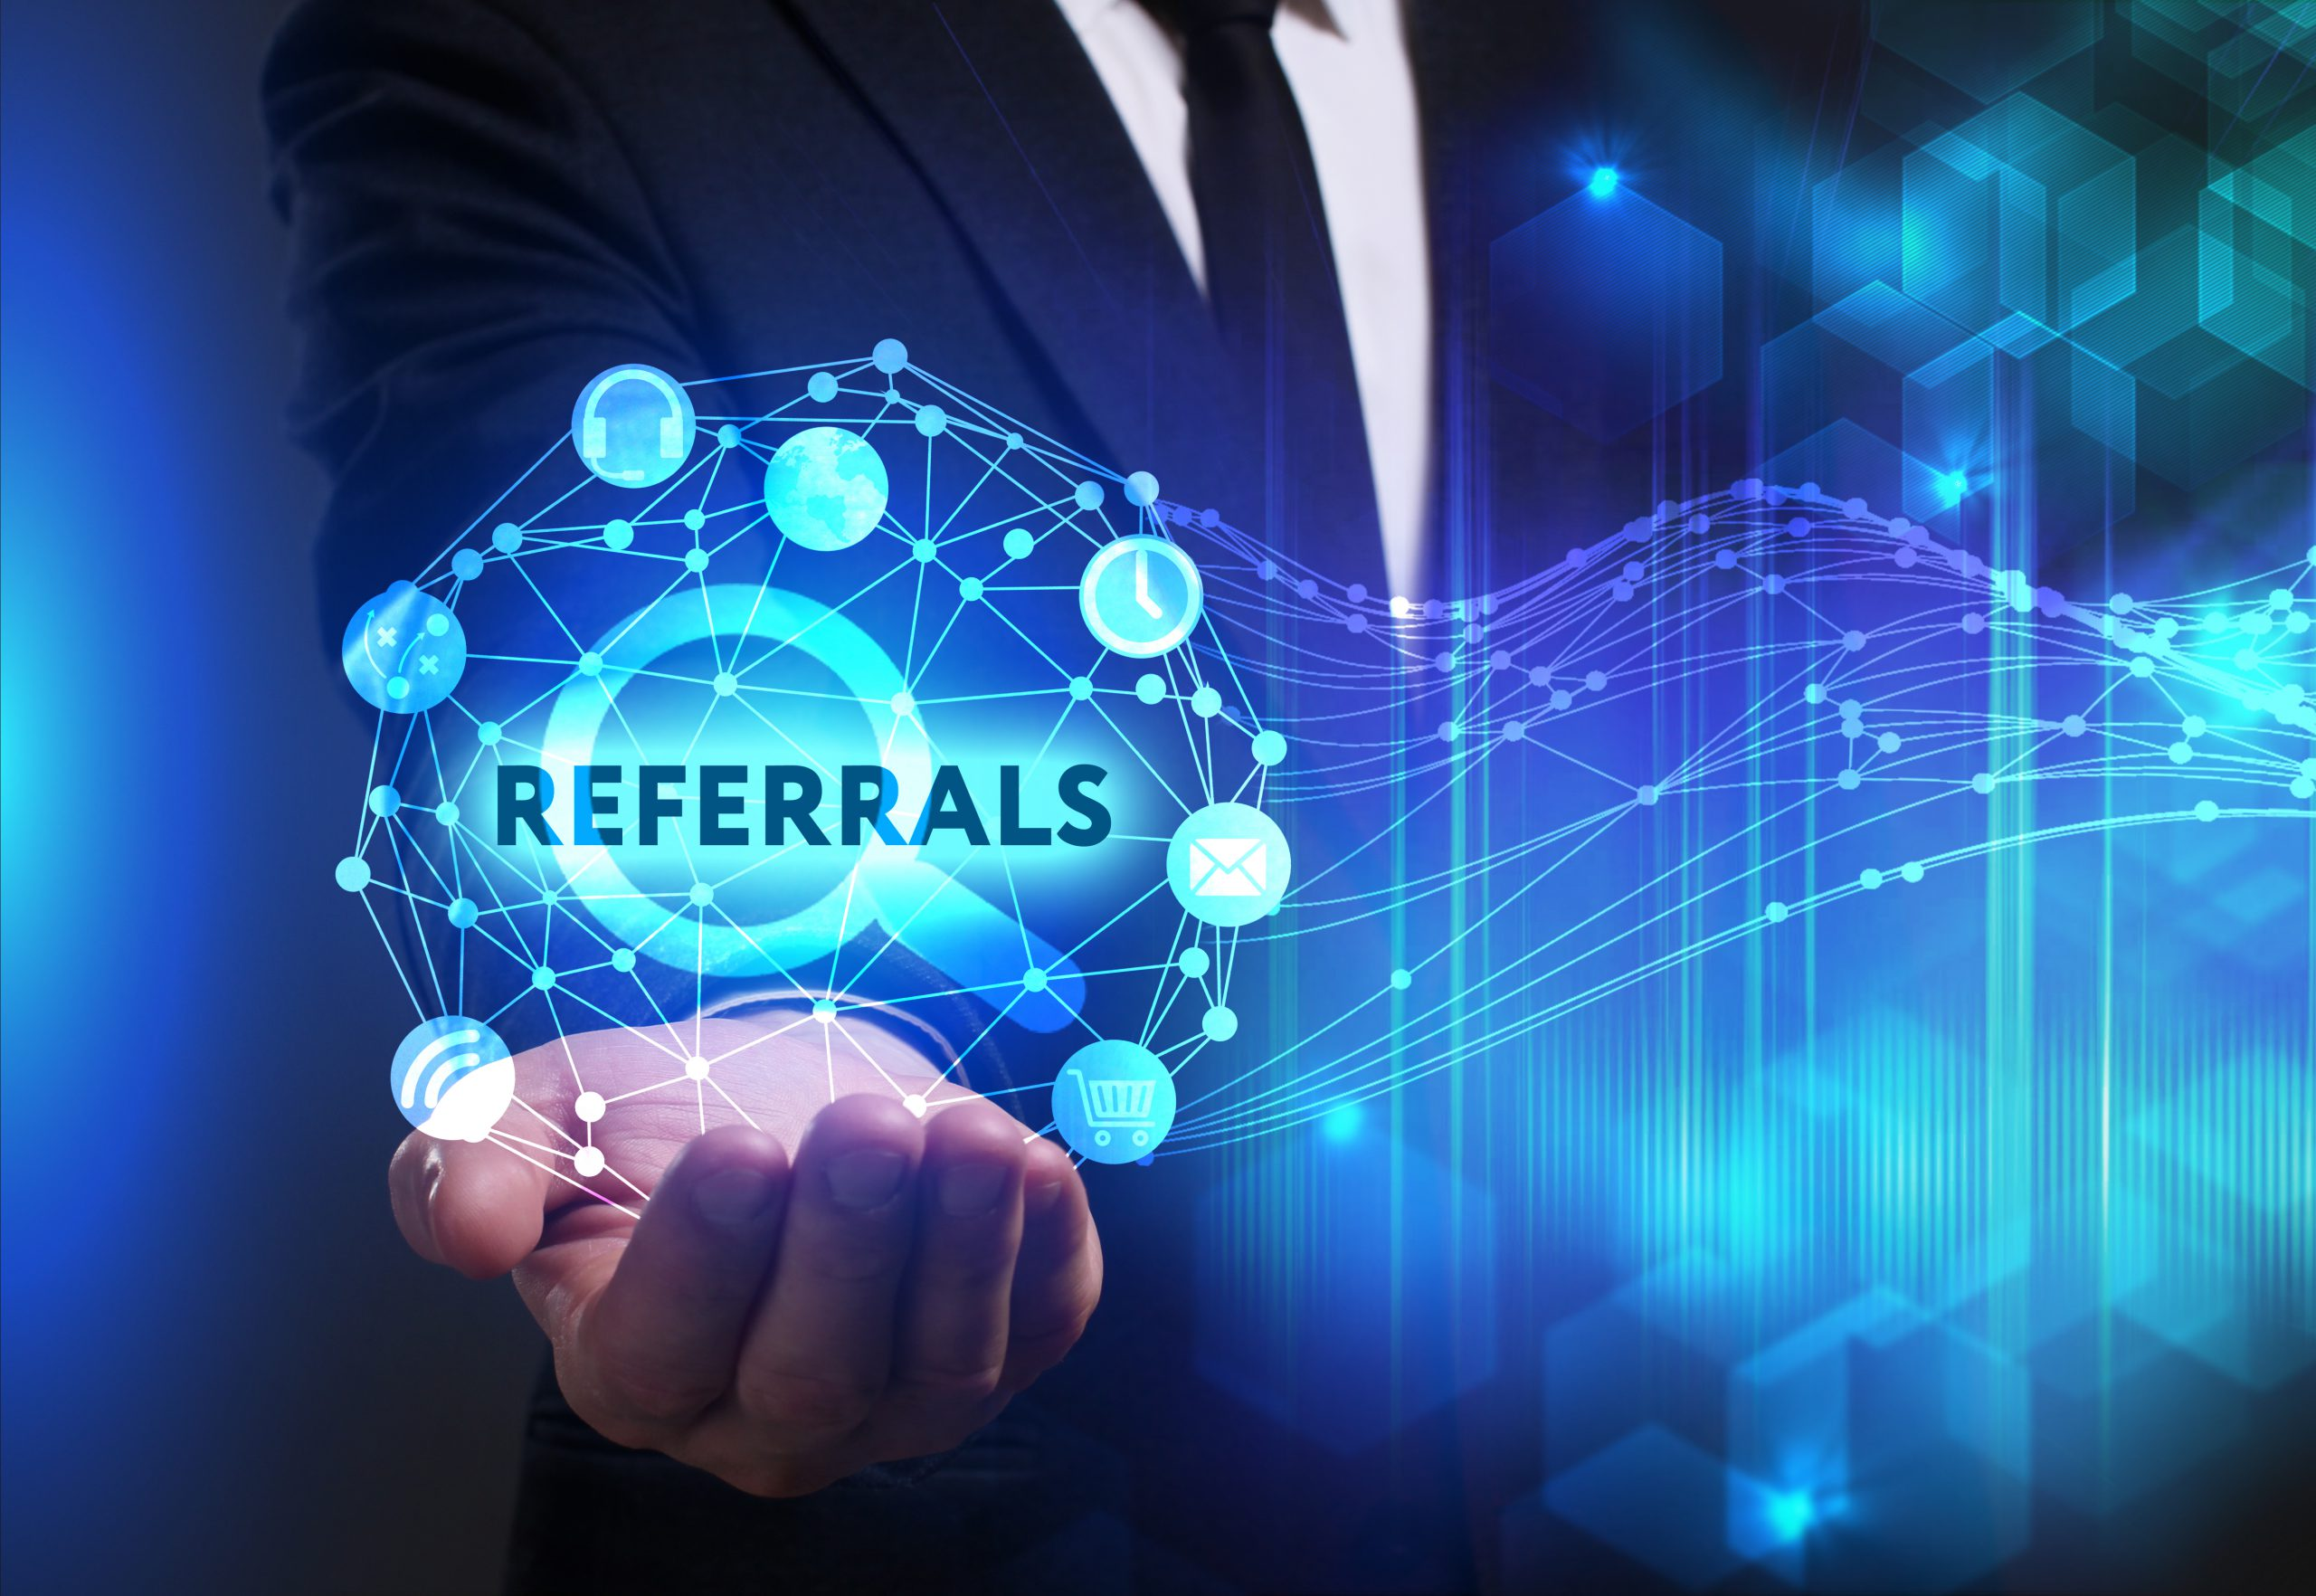 Referral Partner Network – Develop strong cross-referral relationships